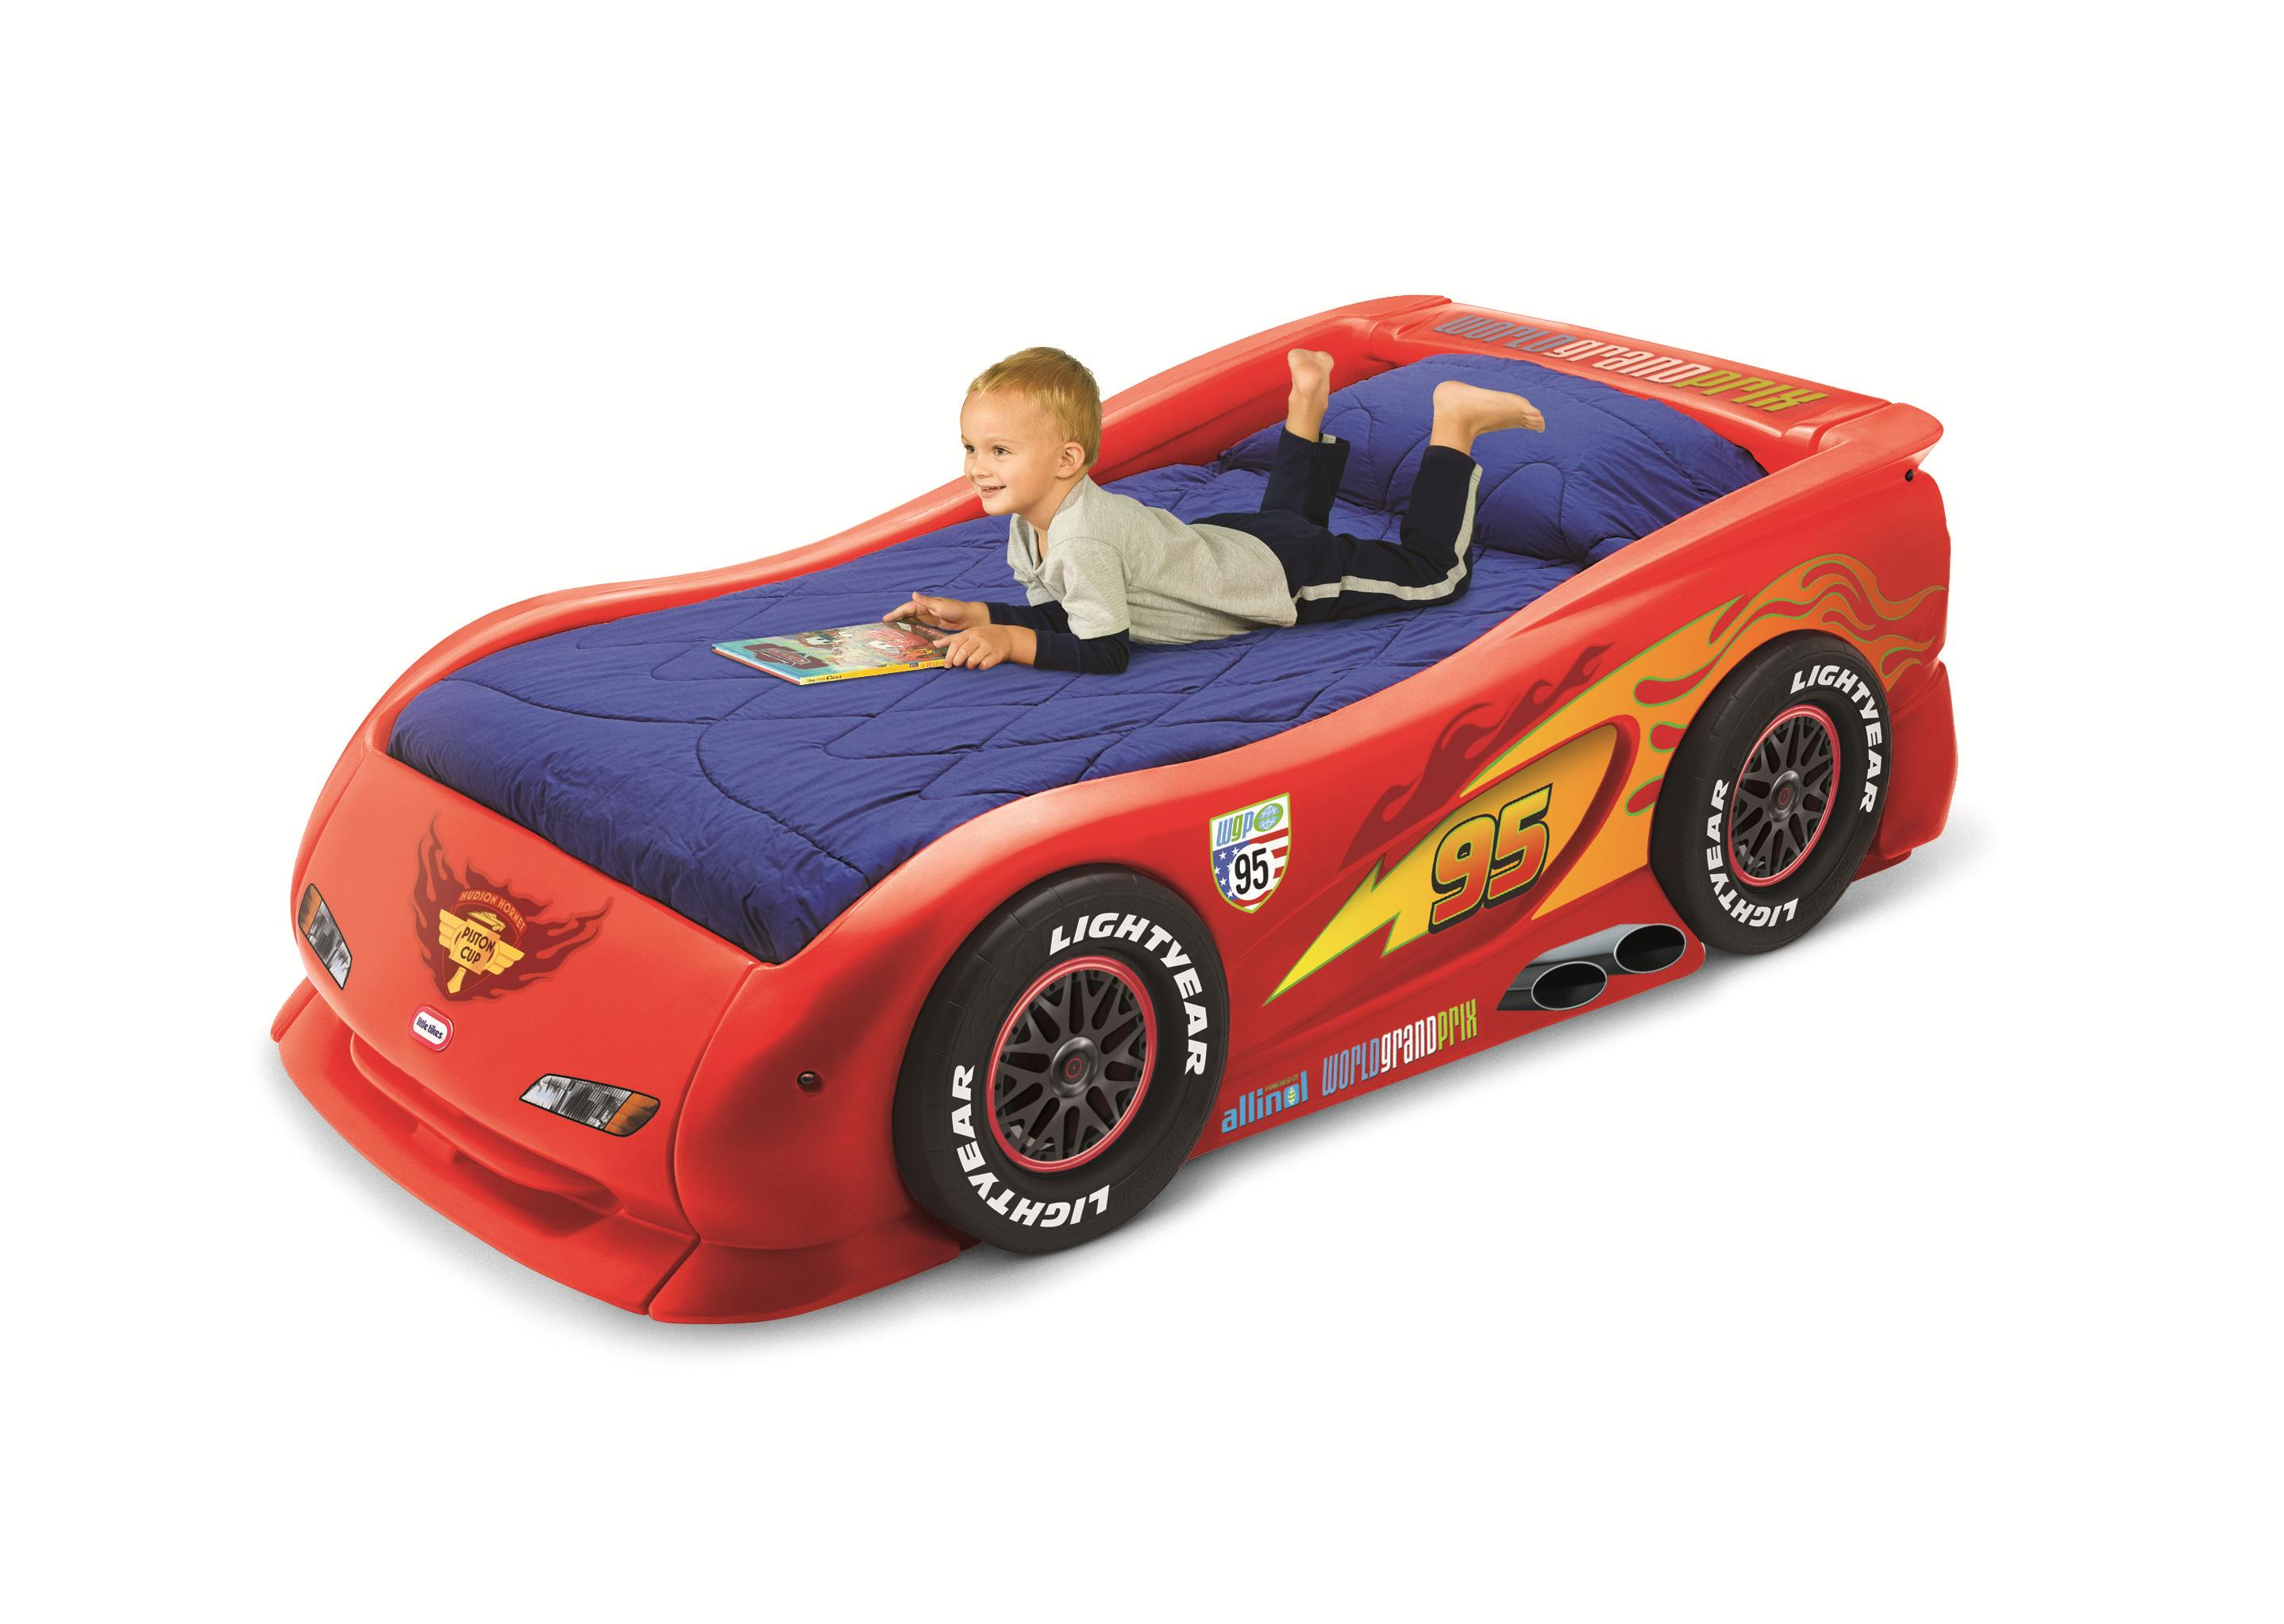 Wooden car beds for boys -  Car Beds Toddlers Download